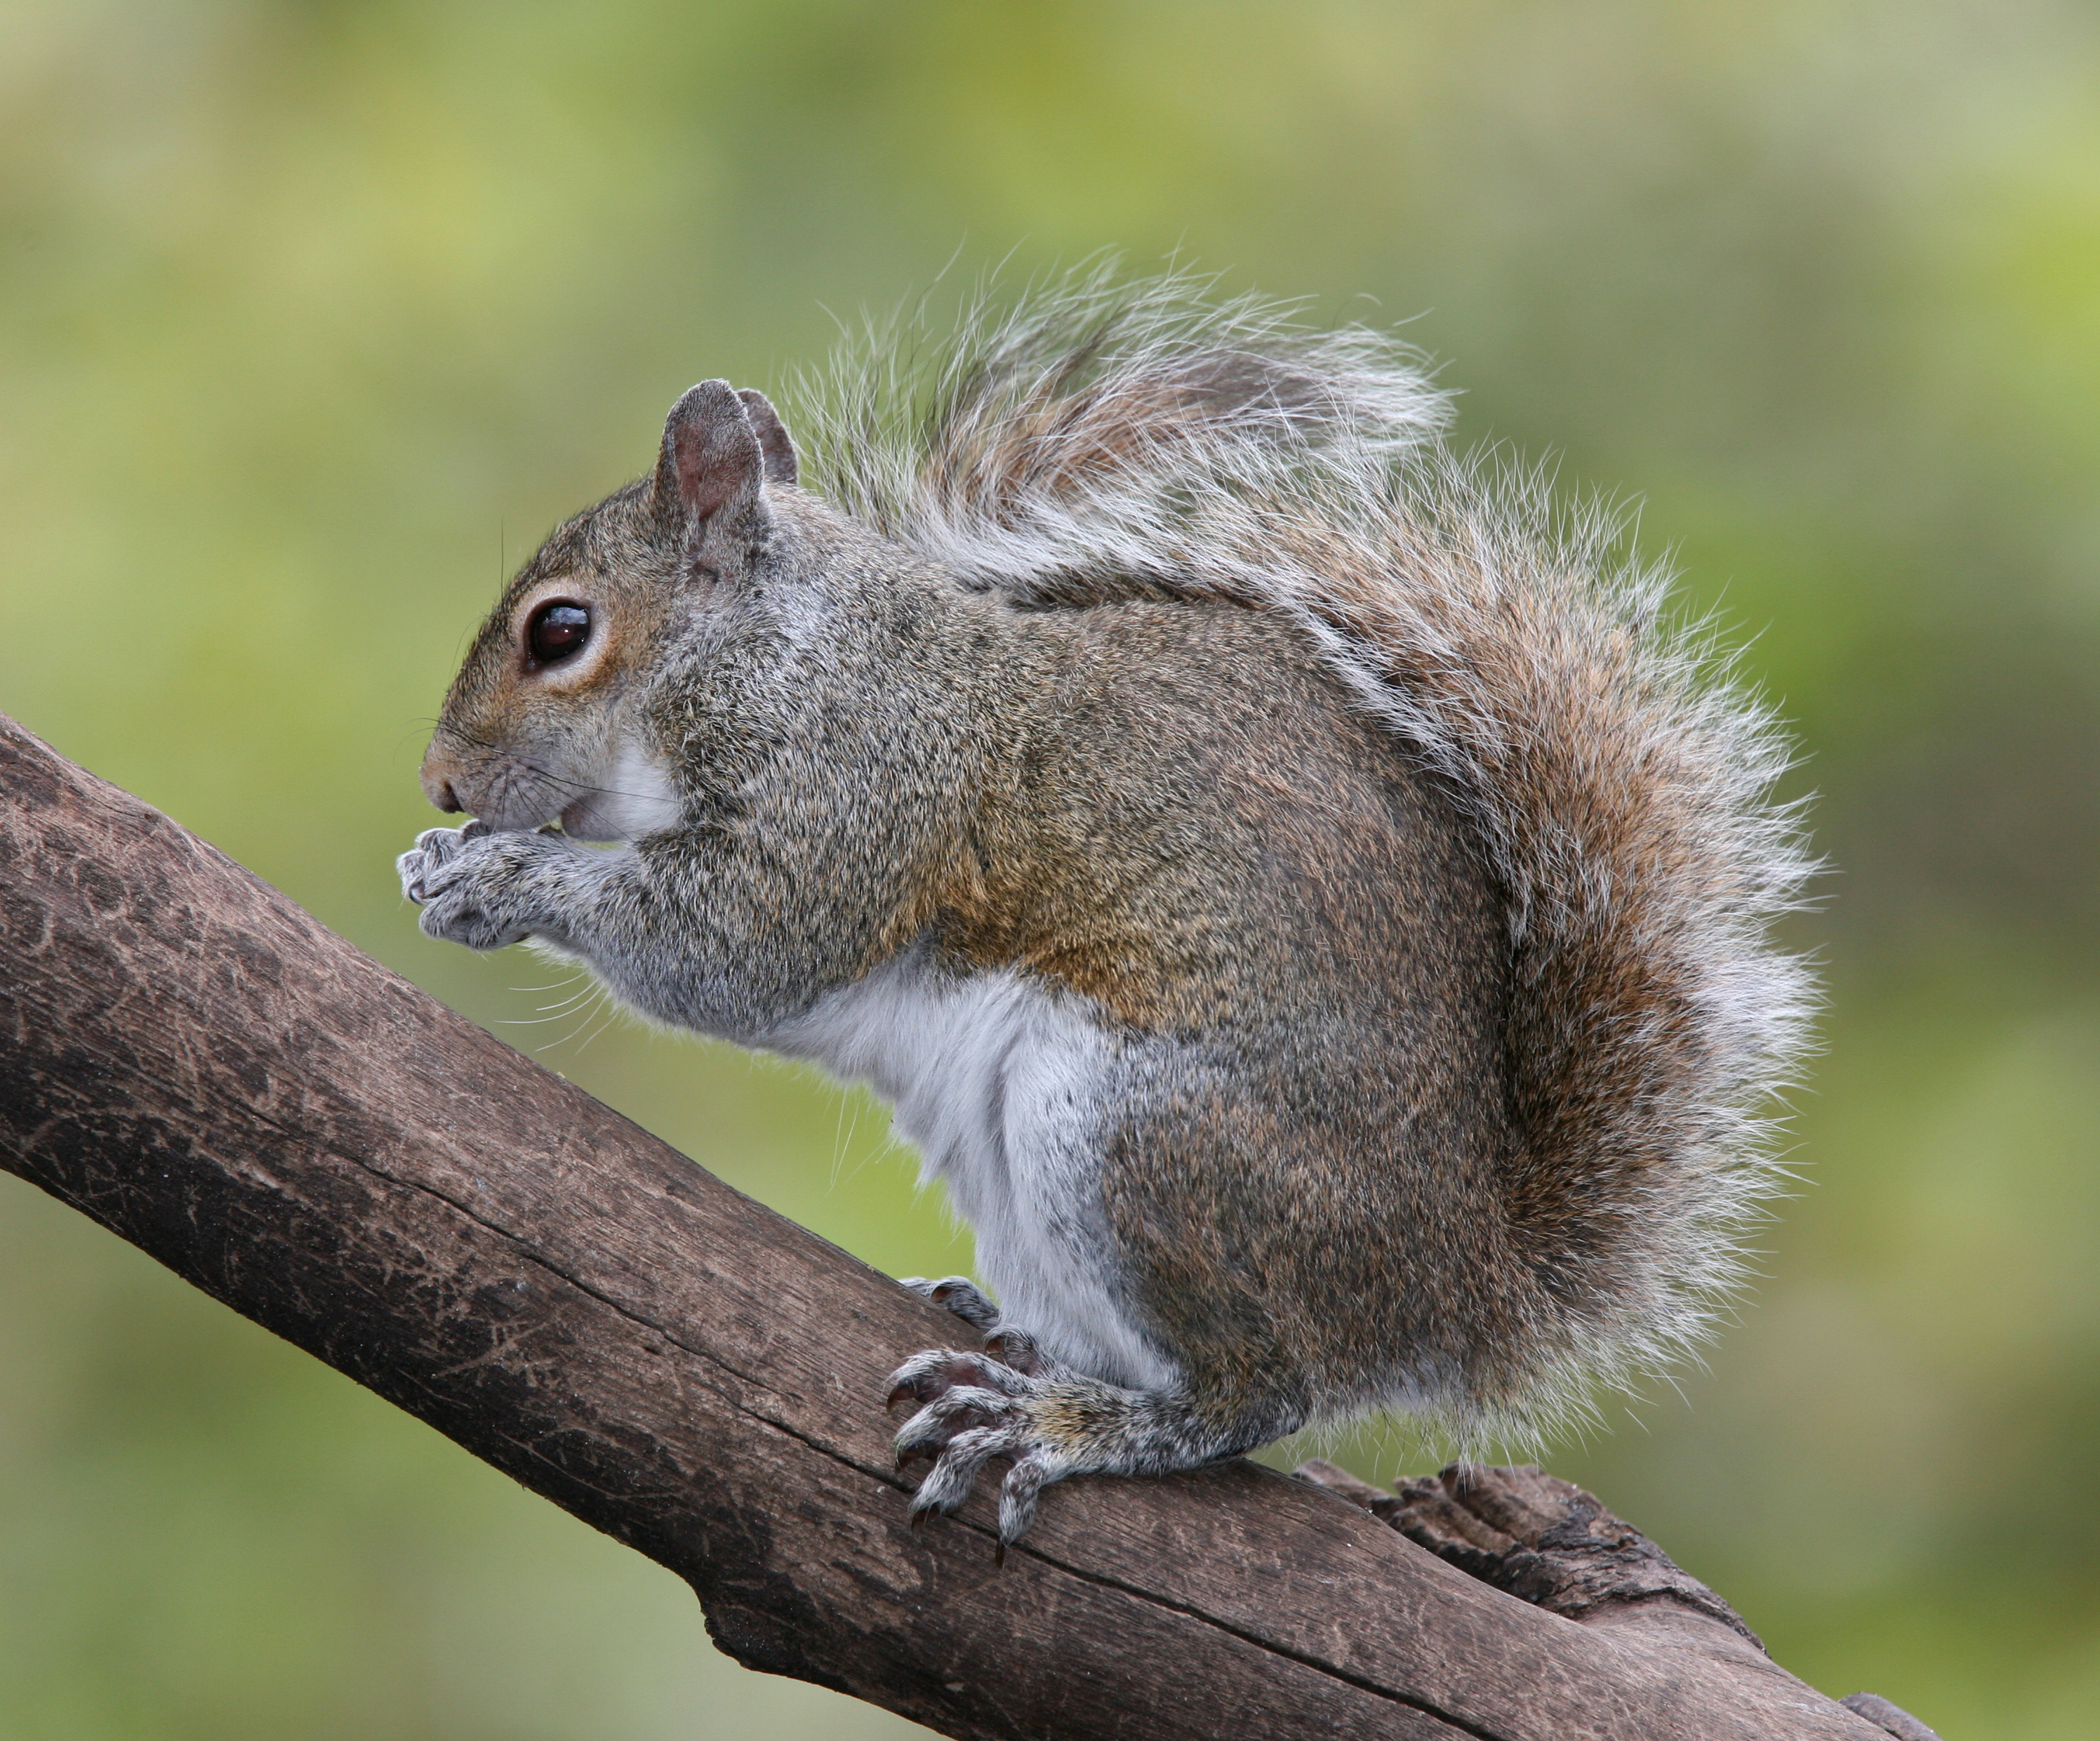 First Annual 'Family-Friendly' Squirrel Hunting Competition Causing Uproar In South Jersey